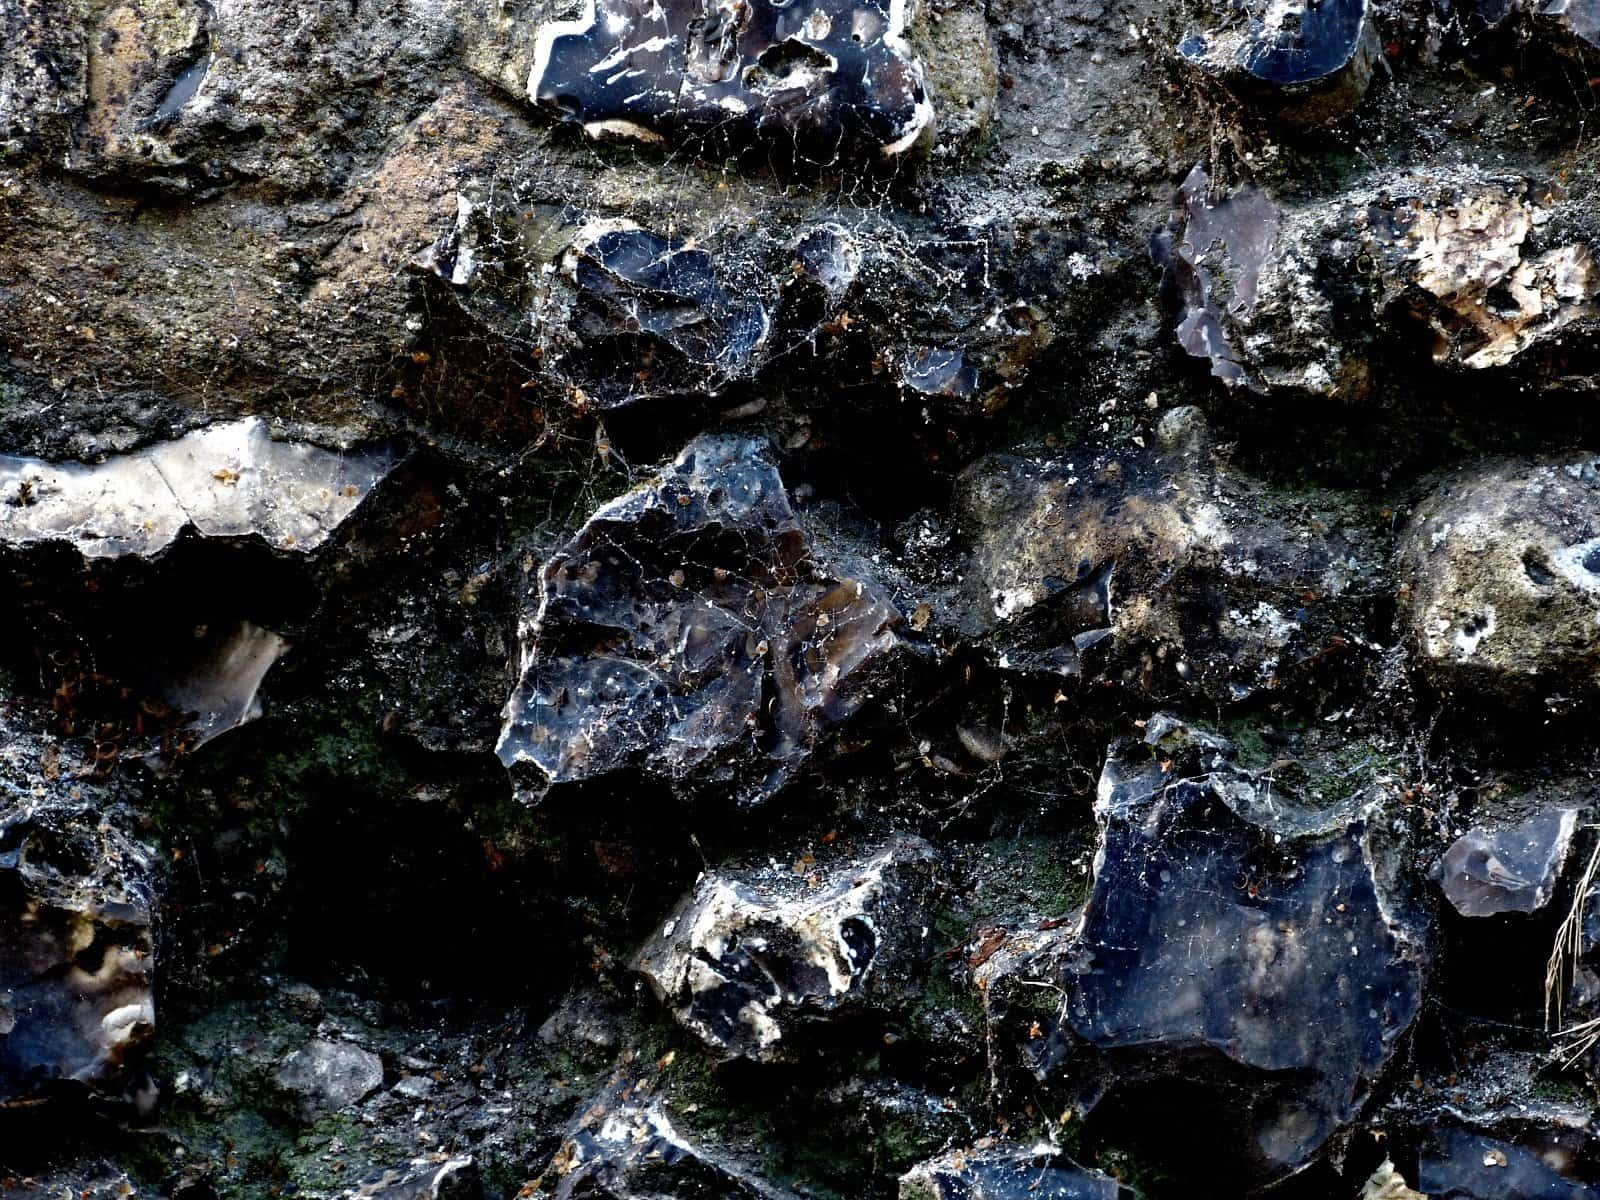 Flints in a wall - close-up image